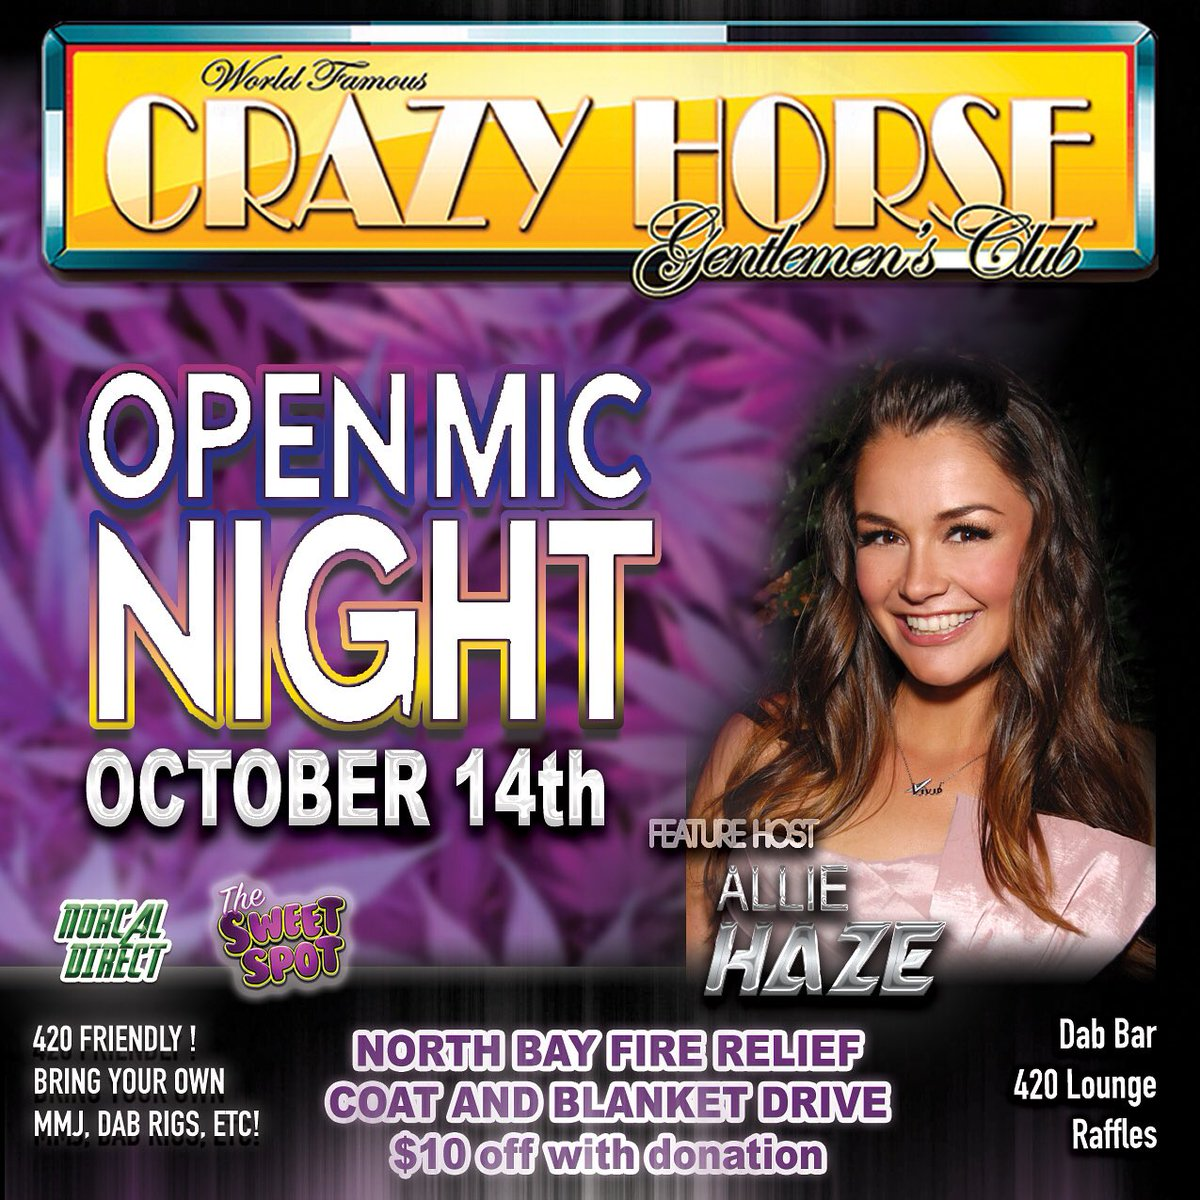 2 pic. Last night here in #SanFrancisco !!! Get to the Crazy Horse so much fun stuff #comedy /